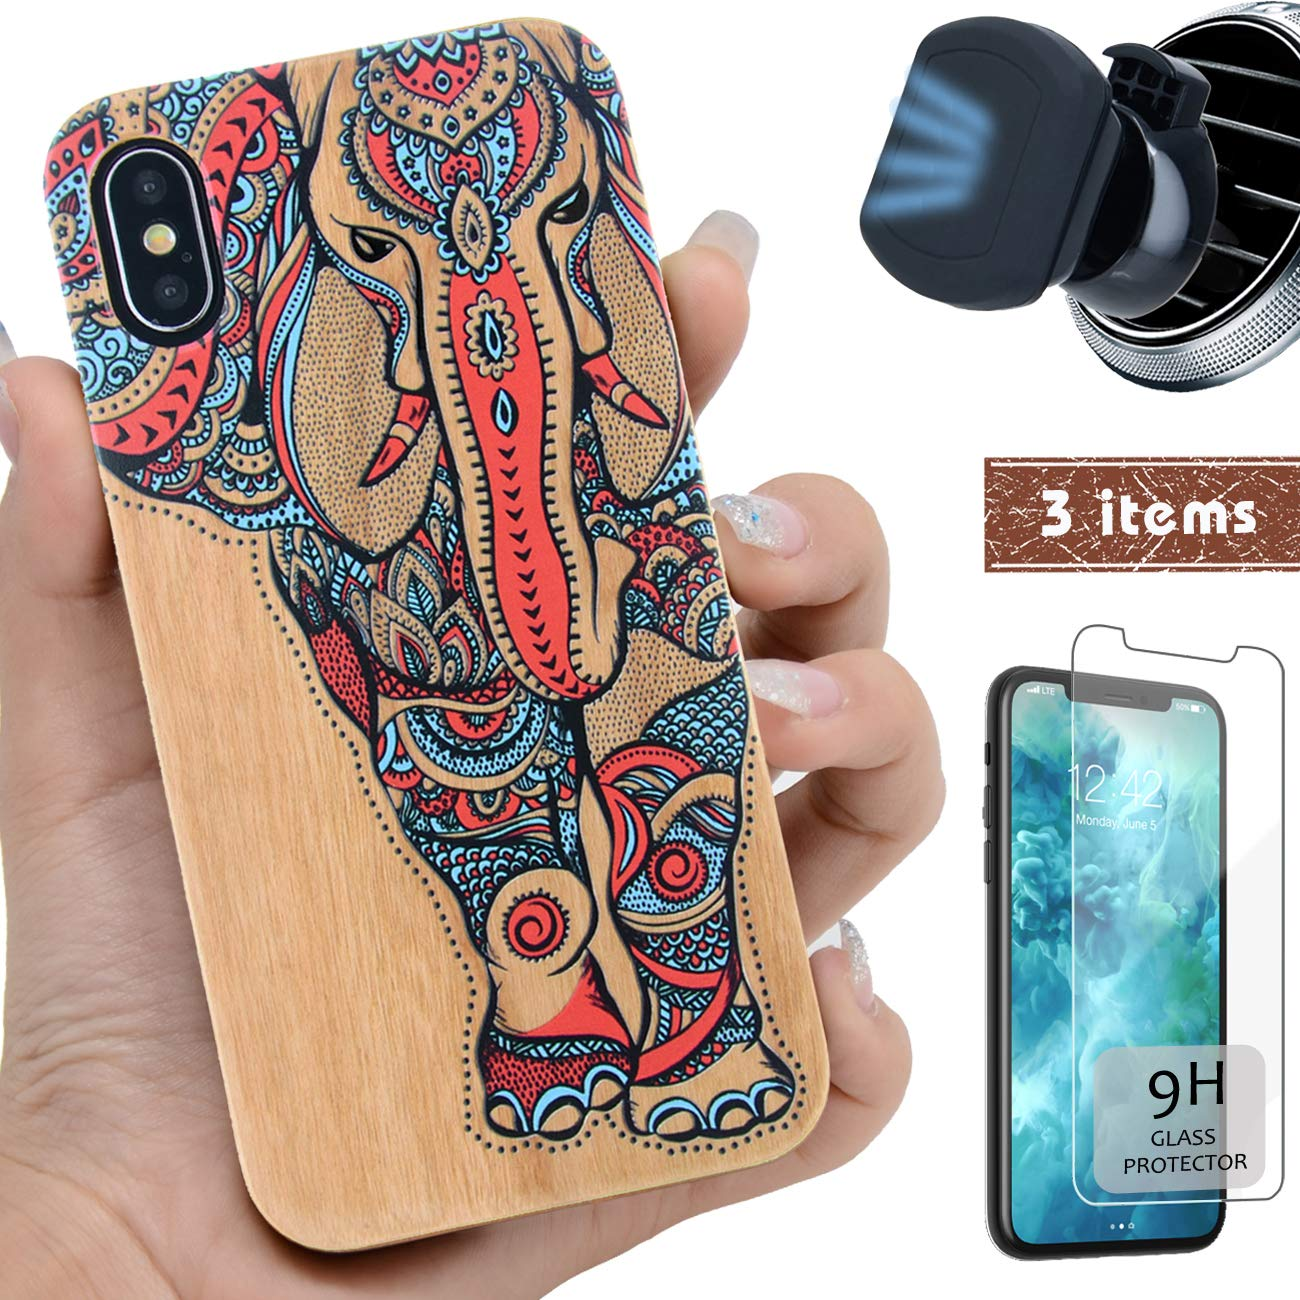 """iProductsUS Wood Phone Case Compatible with iPhone Xs MAX,Magnetic Mount and Screen Protector-3D UV Print Colorful Elephant Cases,Compatible Wireless Charger,Built-in Metal Plate TPU Covers (6.5"""")"""